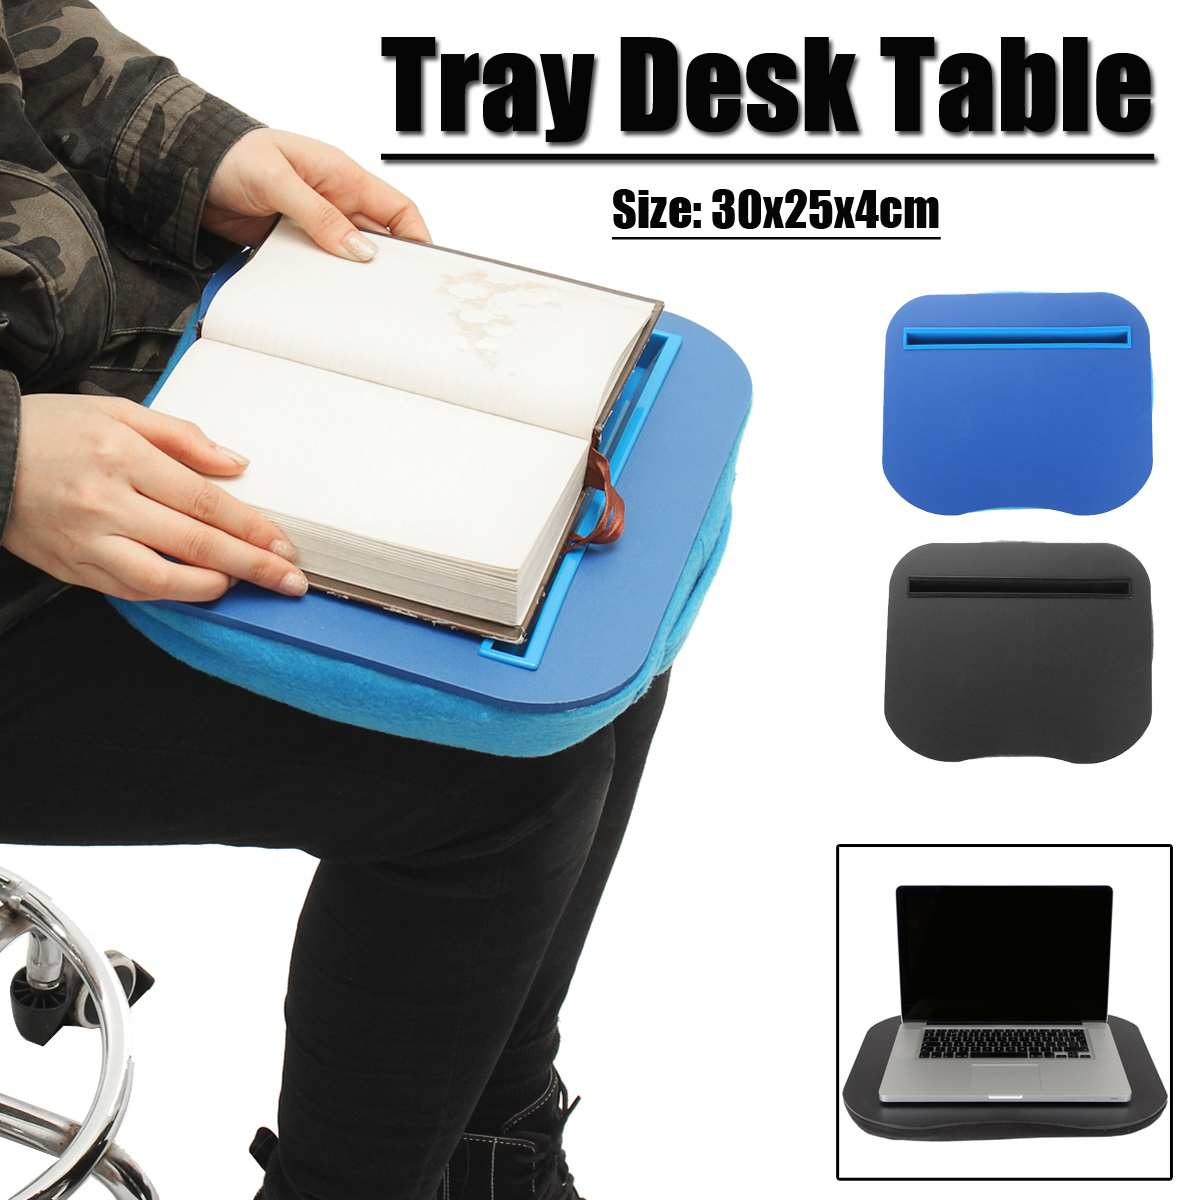 Portable Knee Desk For Laptop/Macbook For IPad Tablet Laptop Phone Book Holder Laptop Stand Reading Office Pilliow Cushion Desk